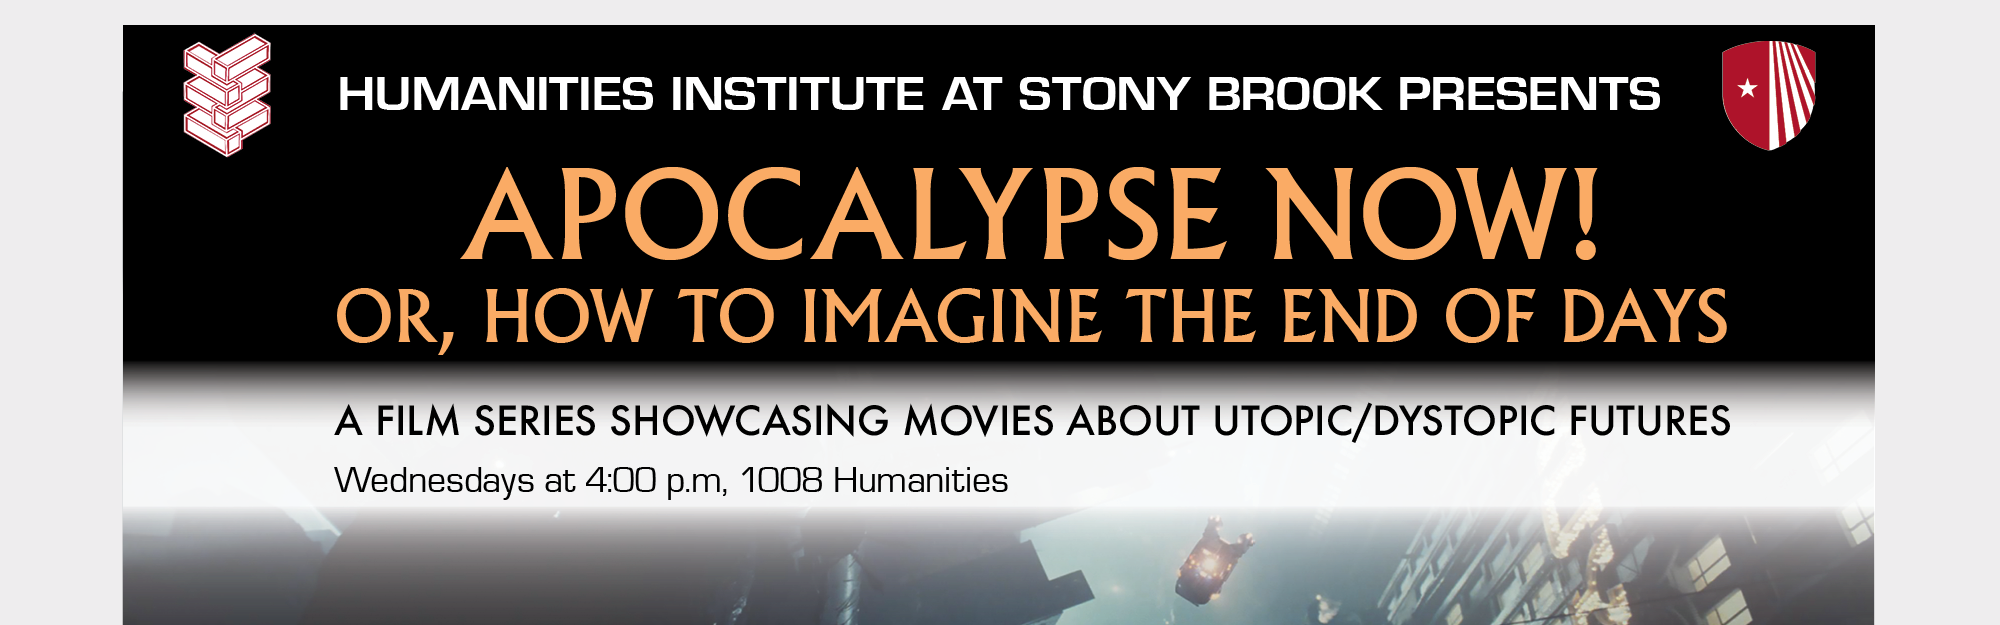 Apocalypse Now! Film Series